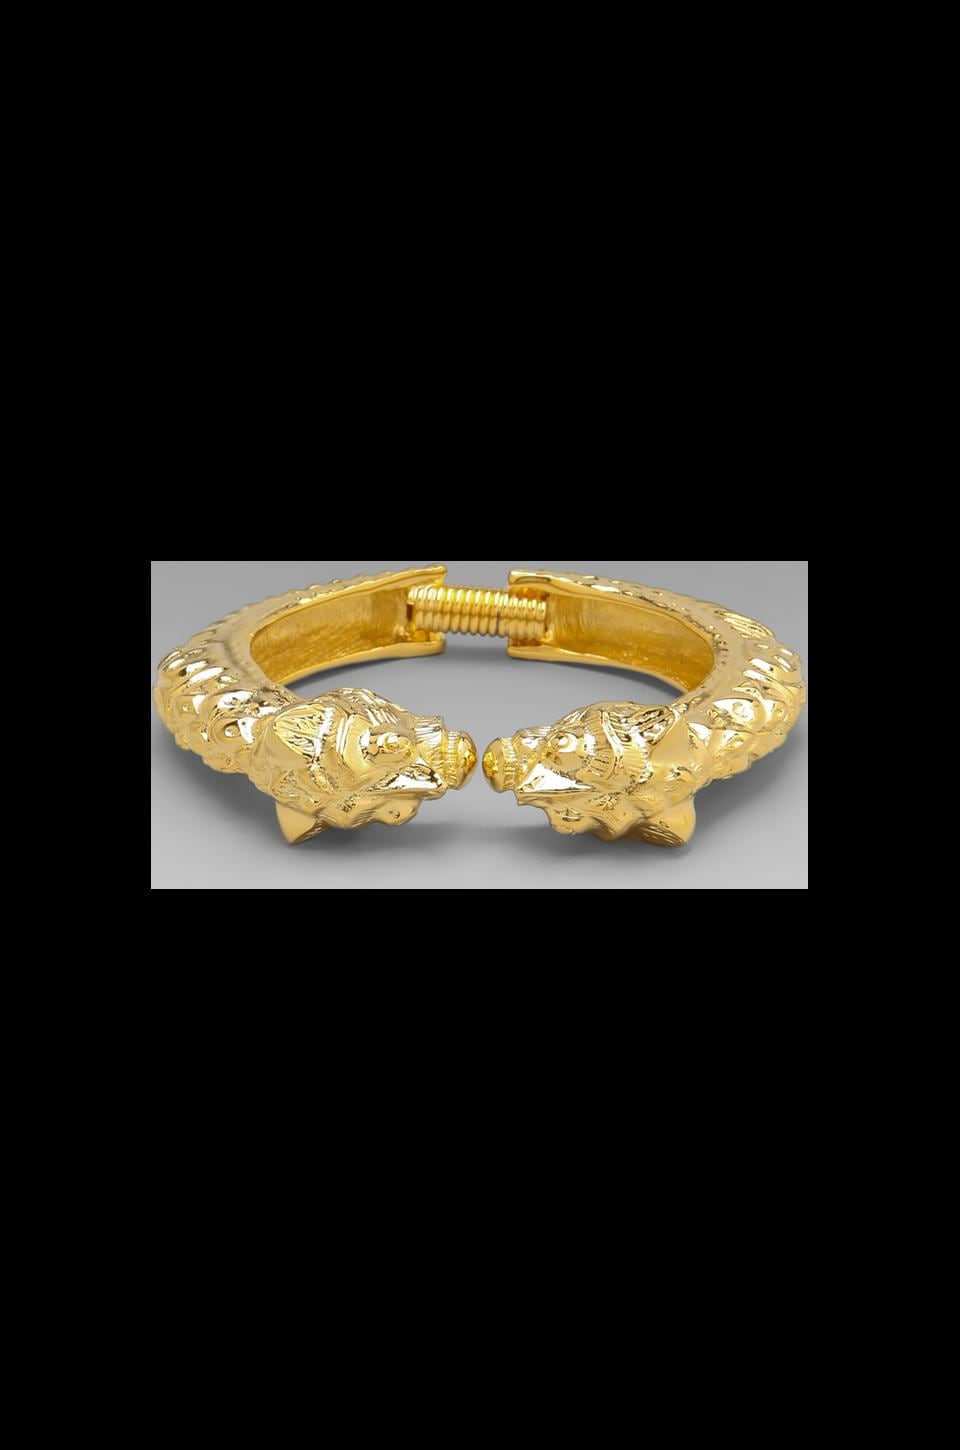 Kenneth Jay Lane 2 Lion Bracelet in Polished Gold